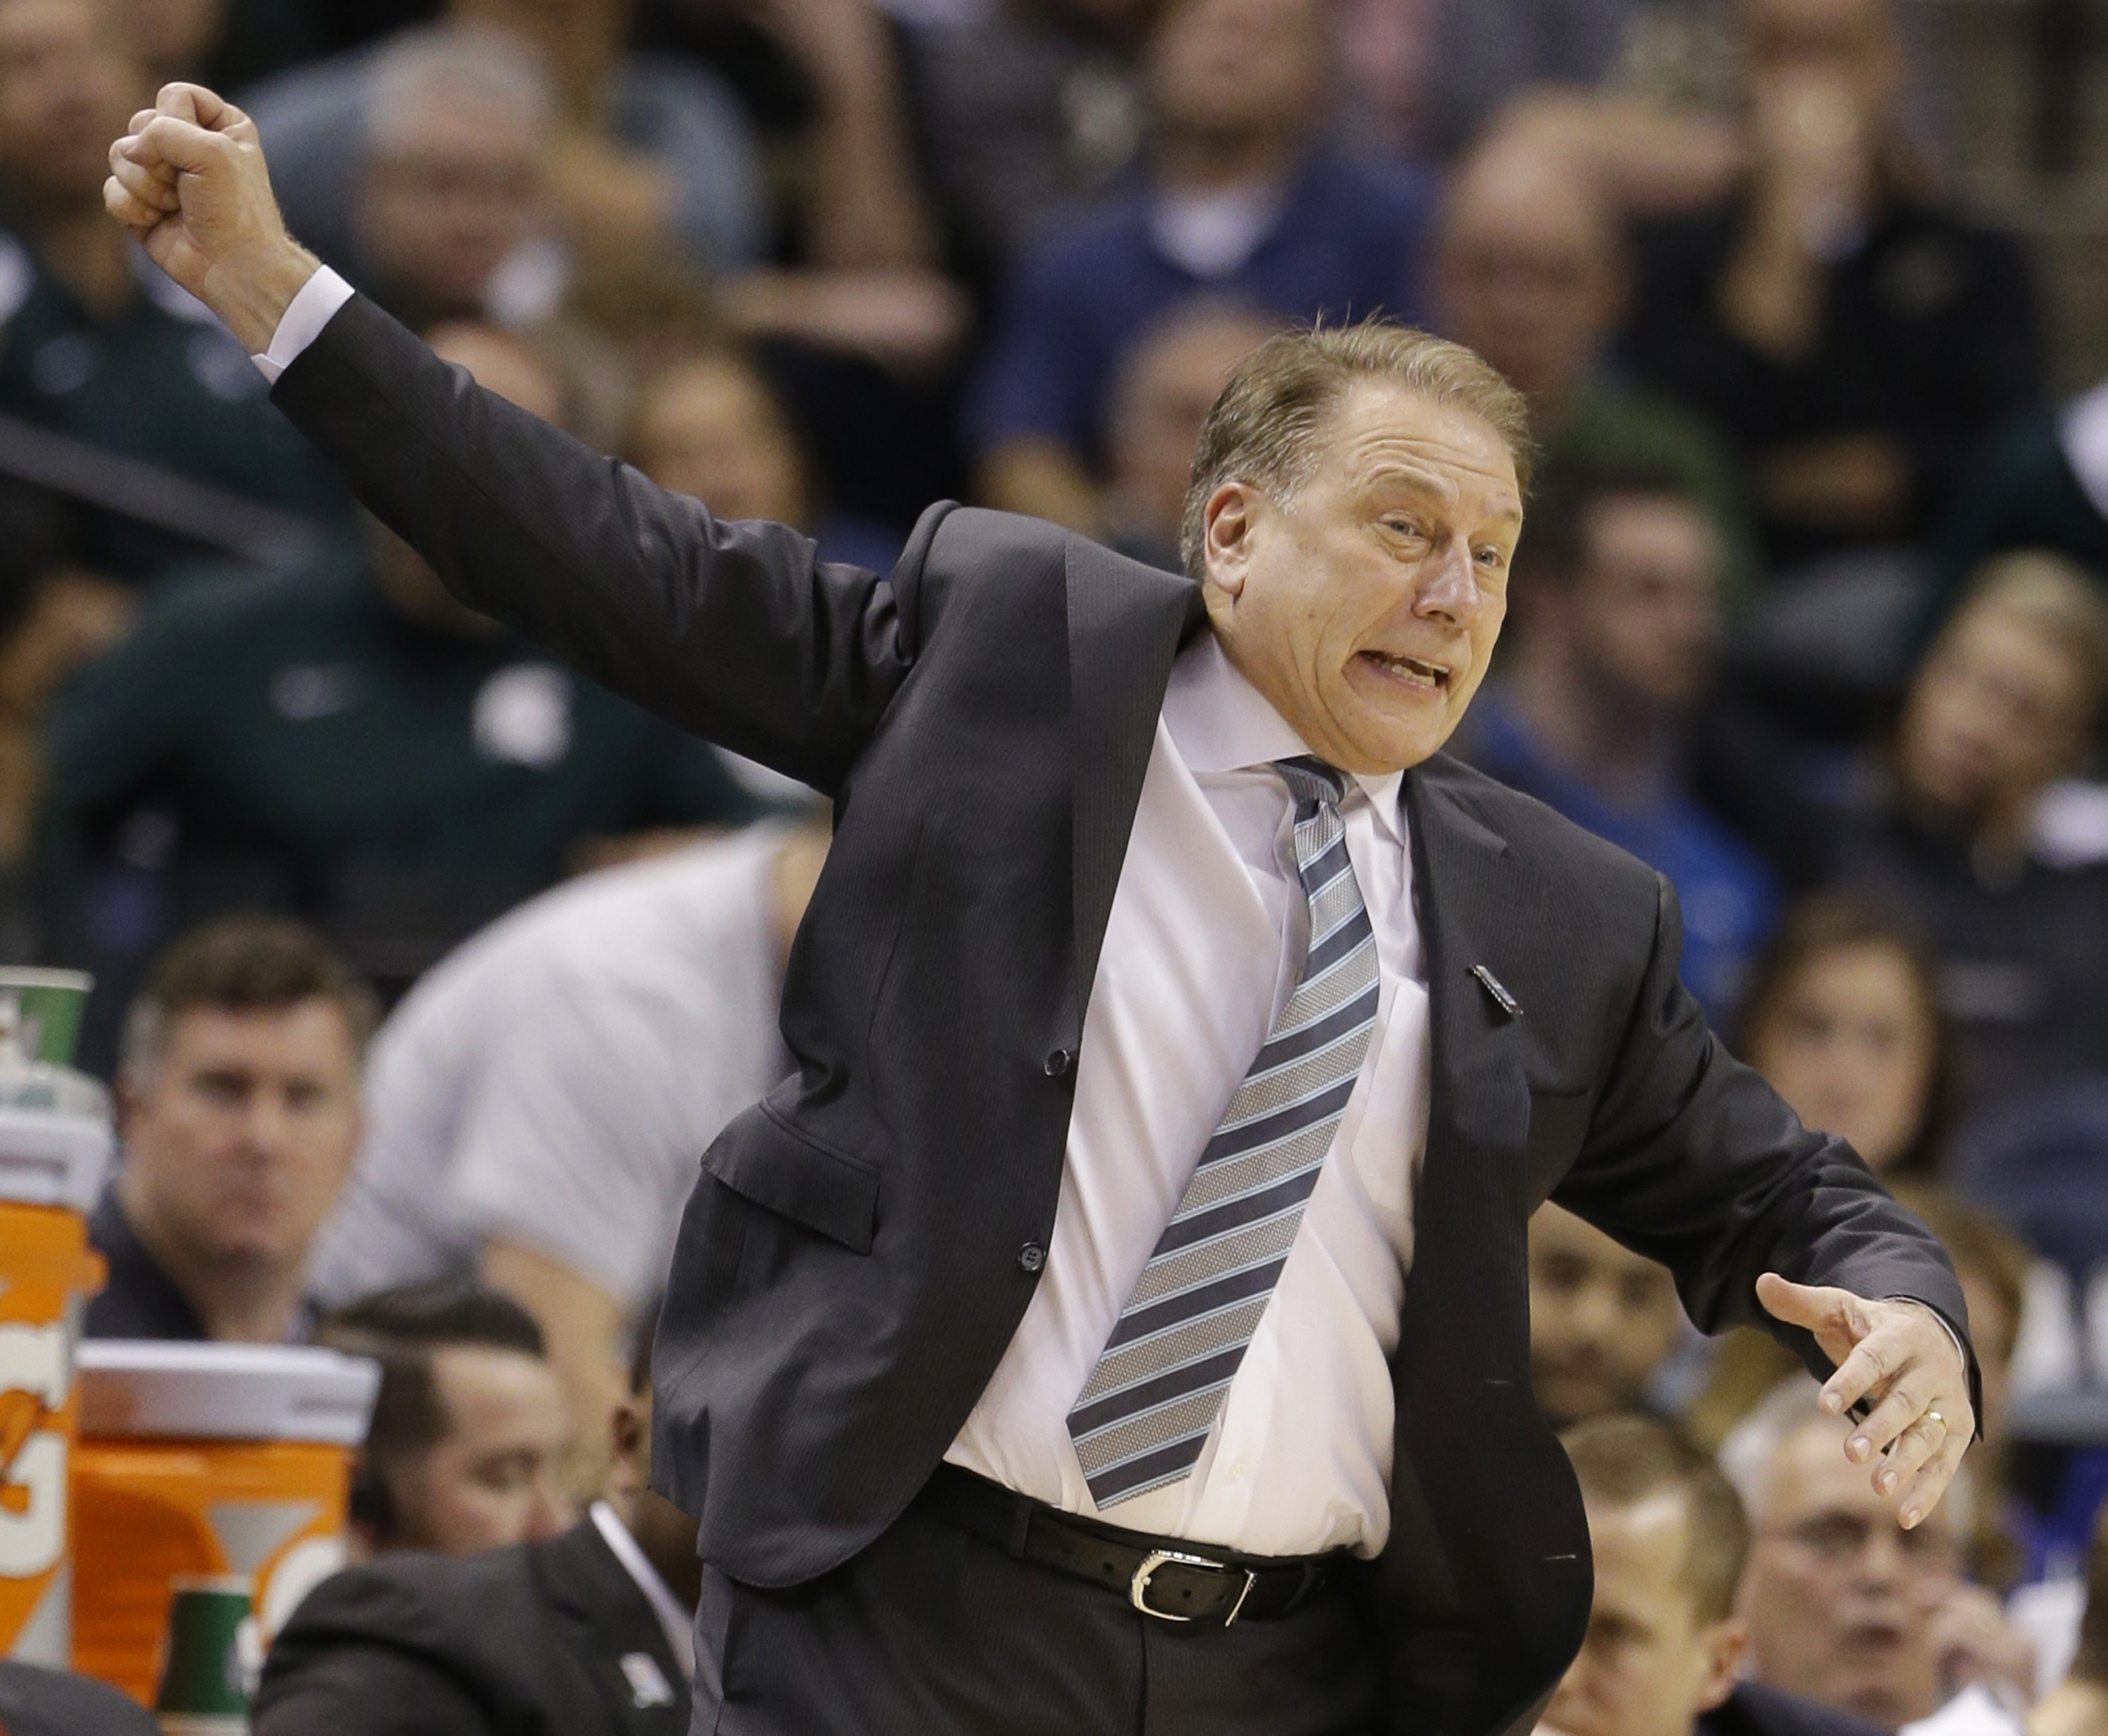 Michigan State's head coach Tom Izzo reacts to a play during the second half of an NCAA college basketball game against Purdue in the finals at the Big Ten Conference tournament, Sunday, March 13, 2016, in Indianapolis. (AP Photo/Michael Conroy)